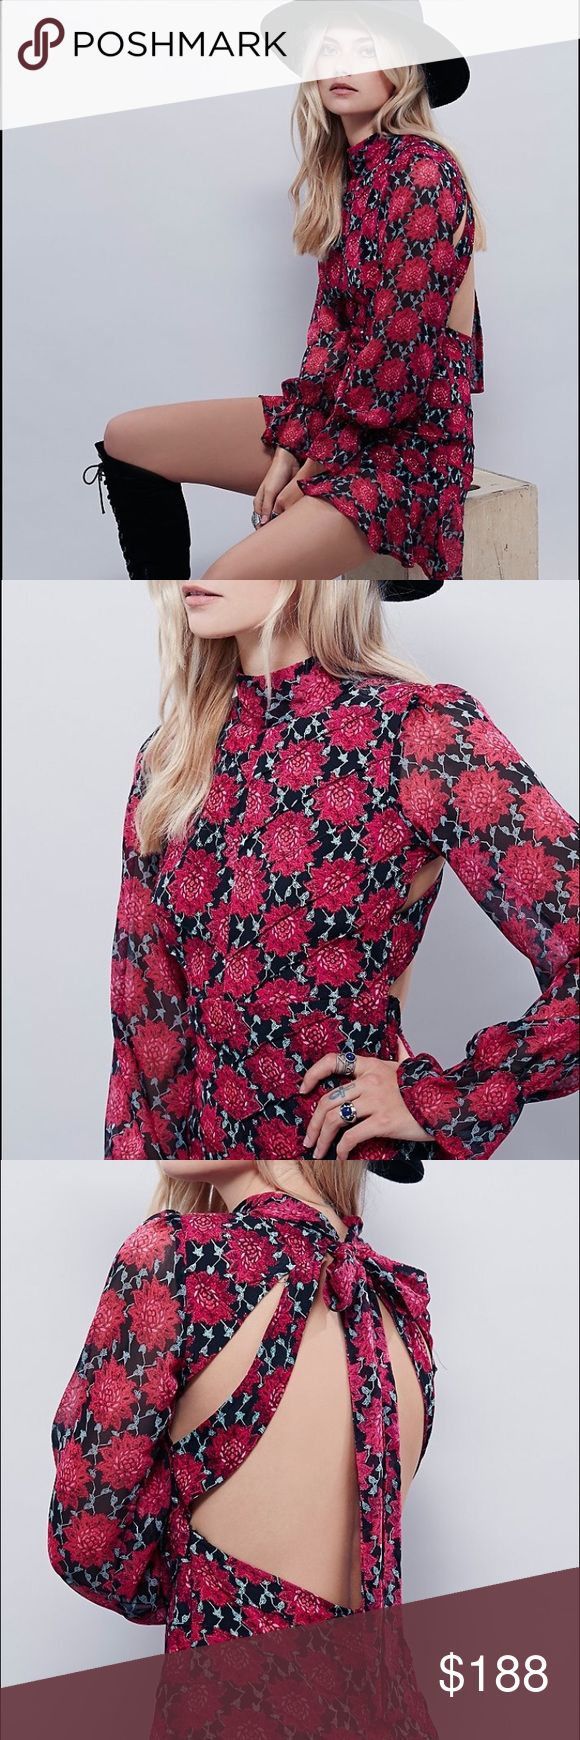 """For Love And Lemons Clover Mini Floral Dress Semi-sheer magenta/black/mint floral print mini dress by the brand """"For Love And Lemons"""". Features a mock neck. Open back with cut out details and ties at back of the neck. Darting textured seam lines throughout. Slightly flared/ruffle sleeve cuffs. Side zip closure. Made from rayon and polyester fabrics. Women's size small. This piece is new without tags, as I have never ended up wearing it. This is in excellent condition. For Love and Lemons…"""